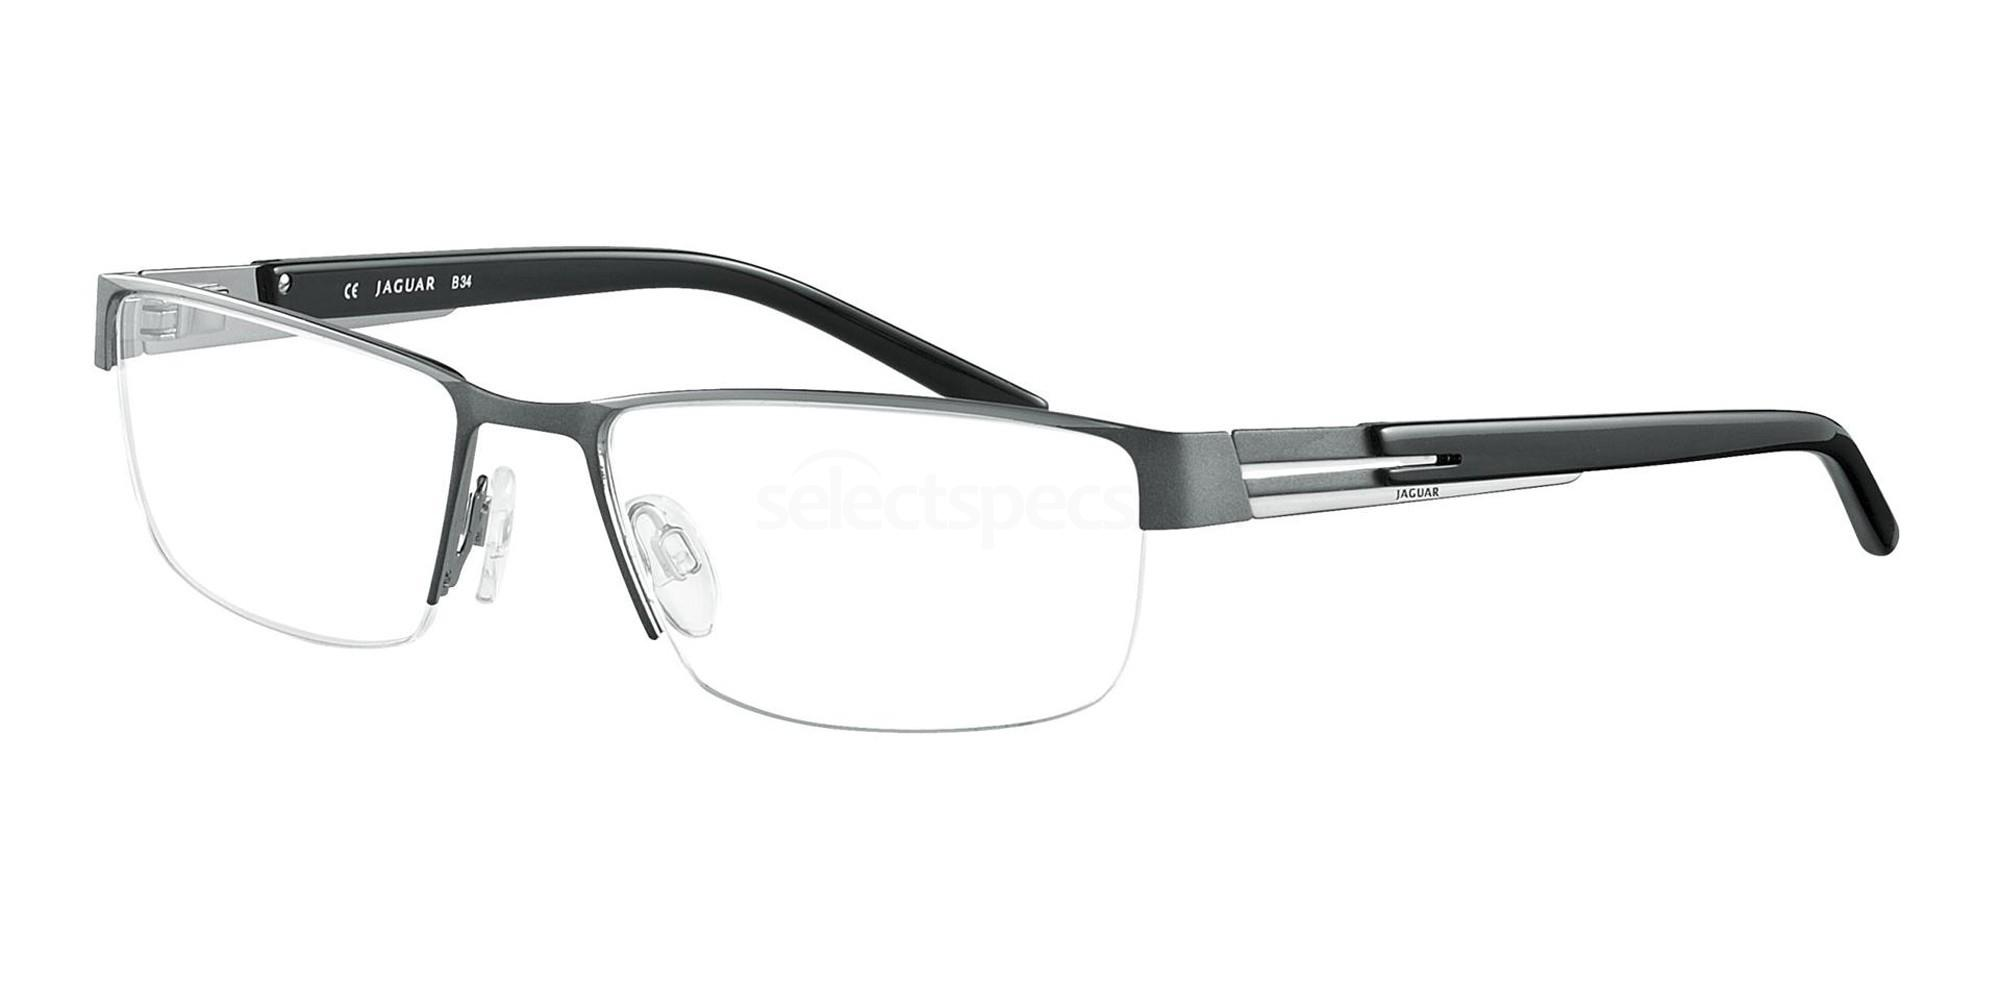 650 33552 Glasses, JAGUAR Eyewear